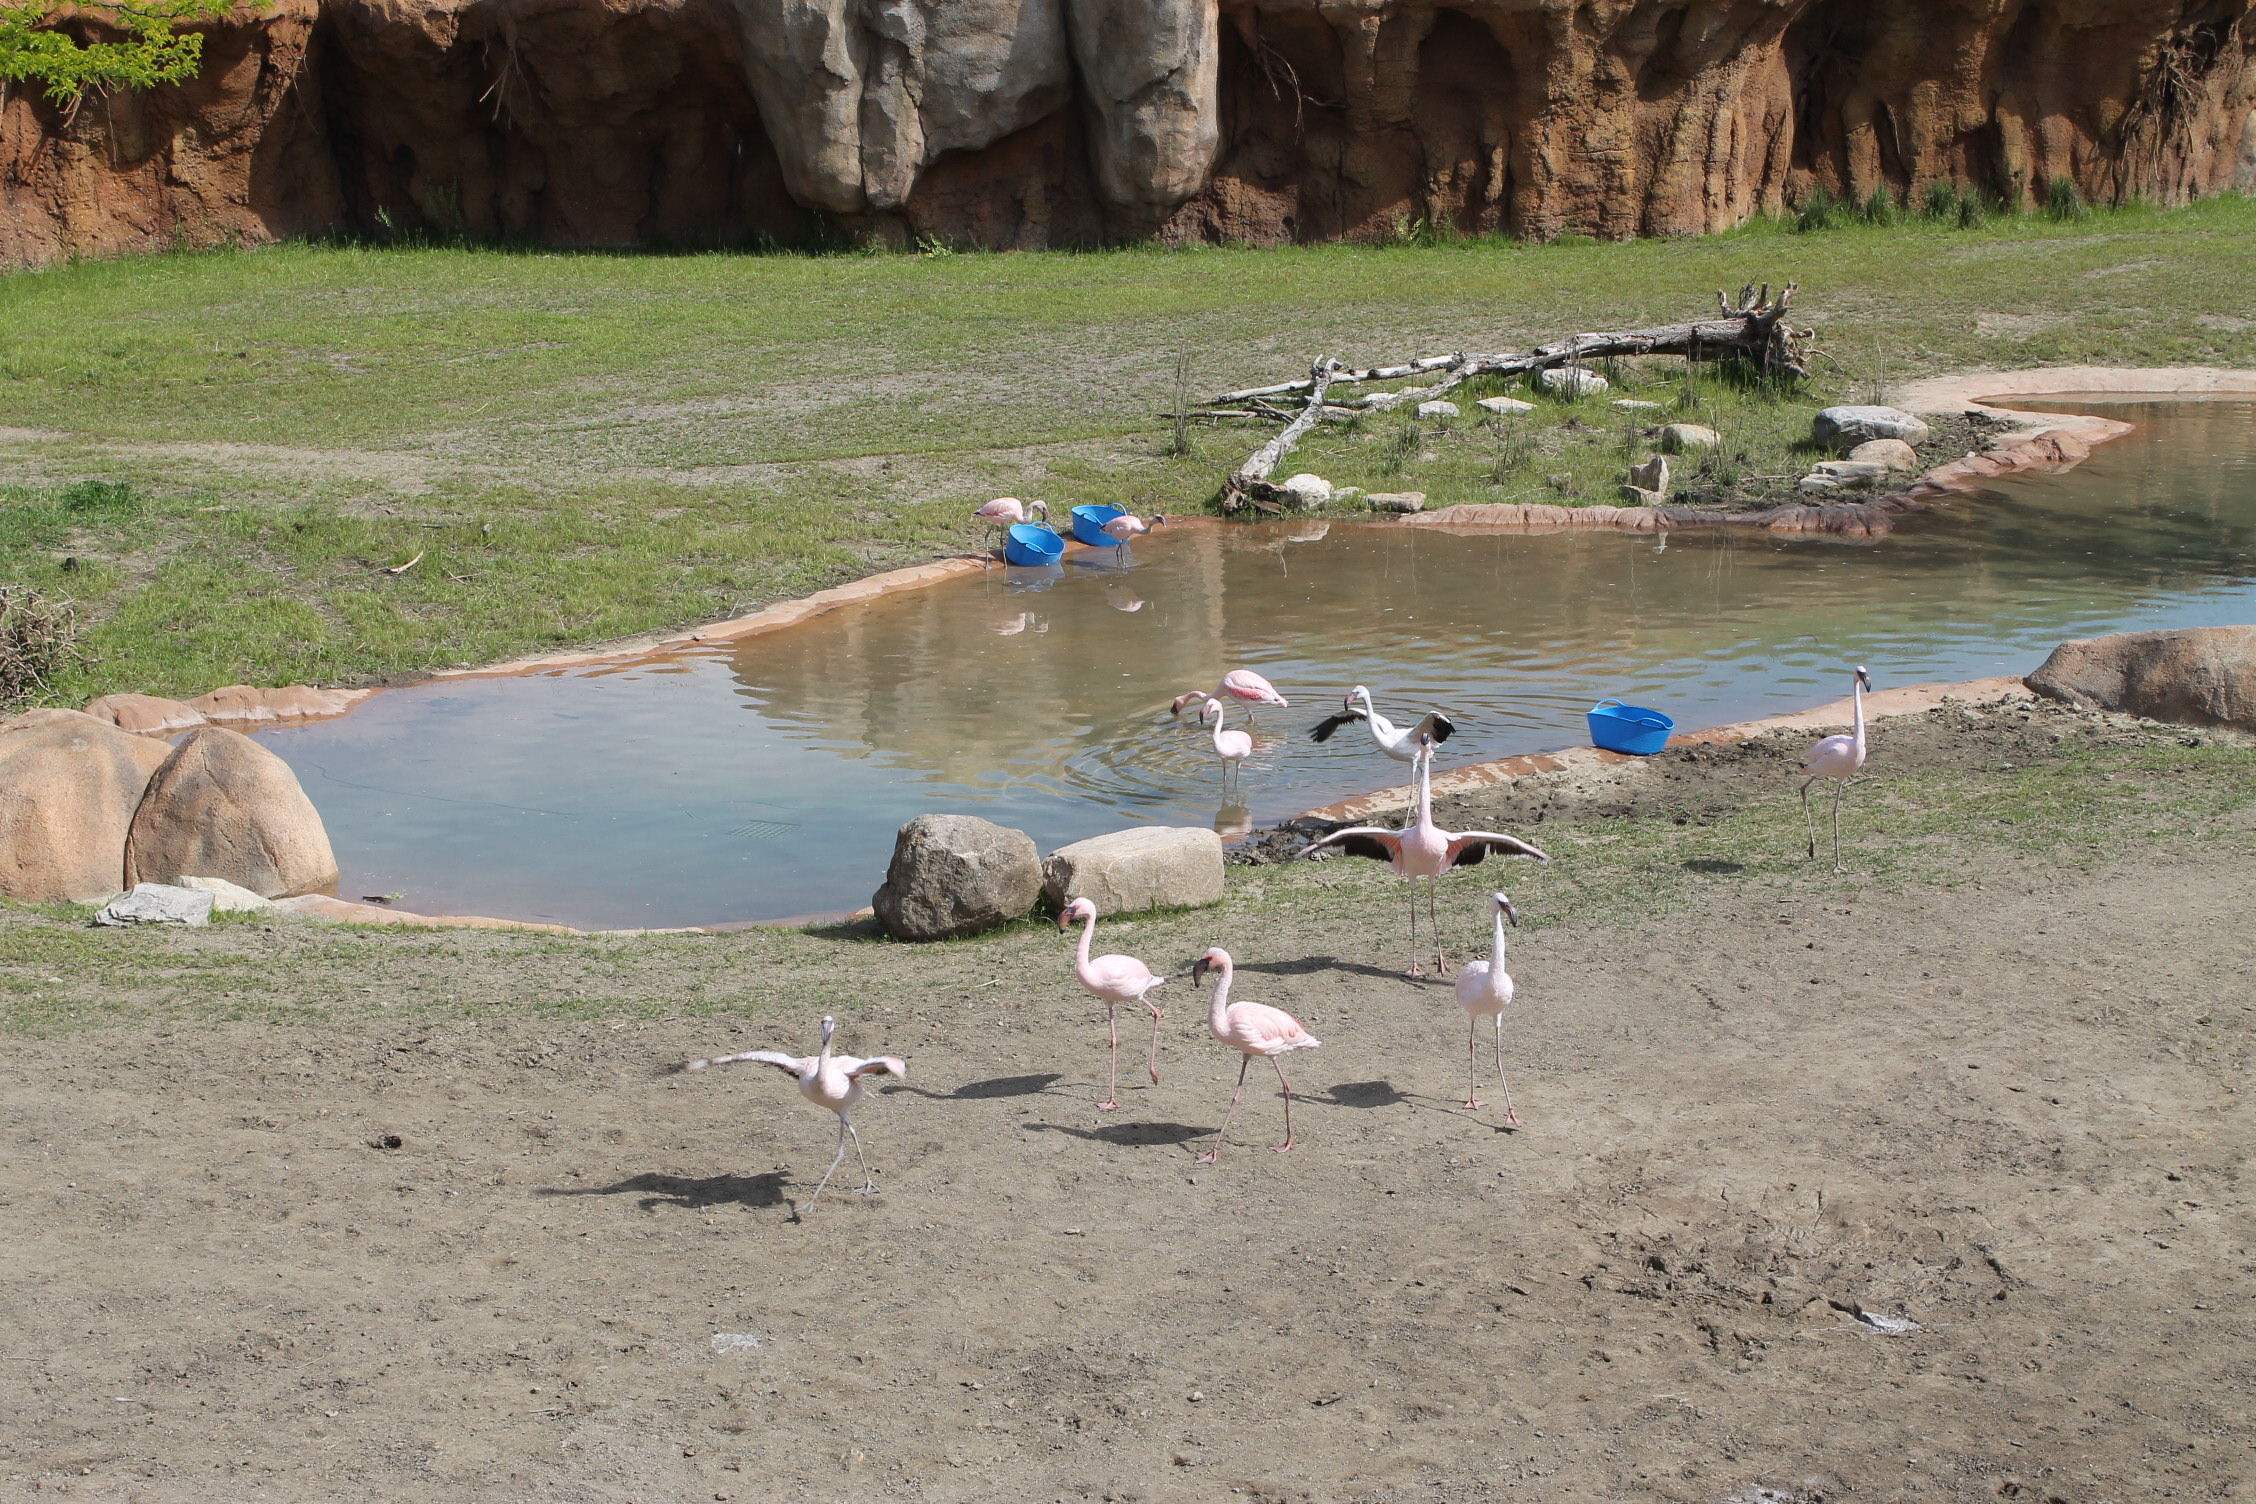 Watering hole later in the day: Flamingos